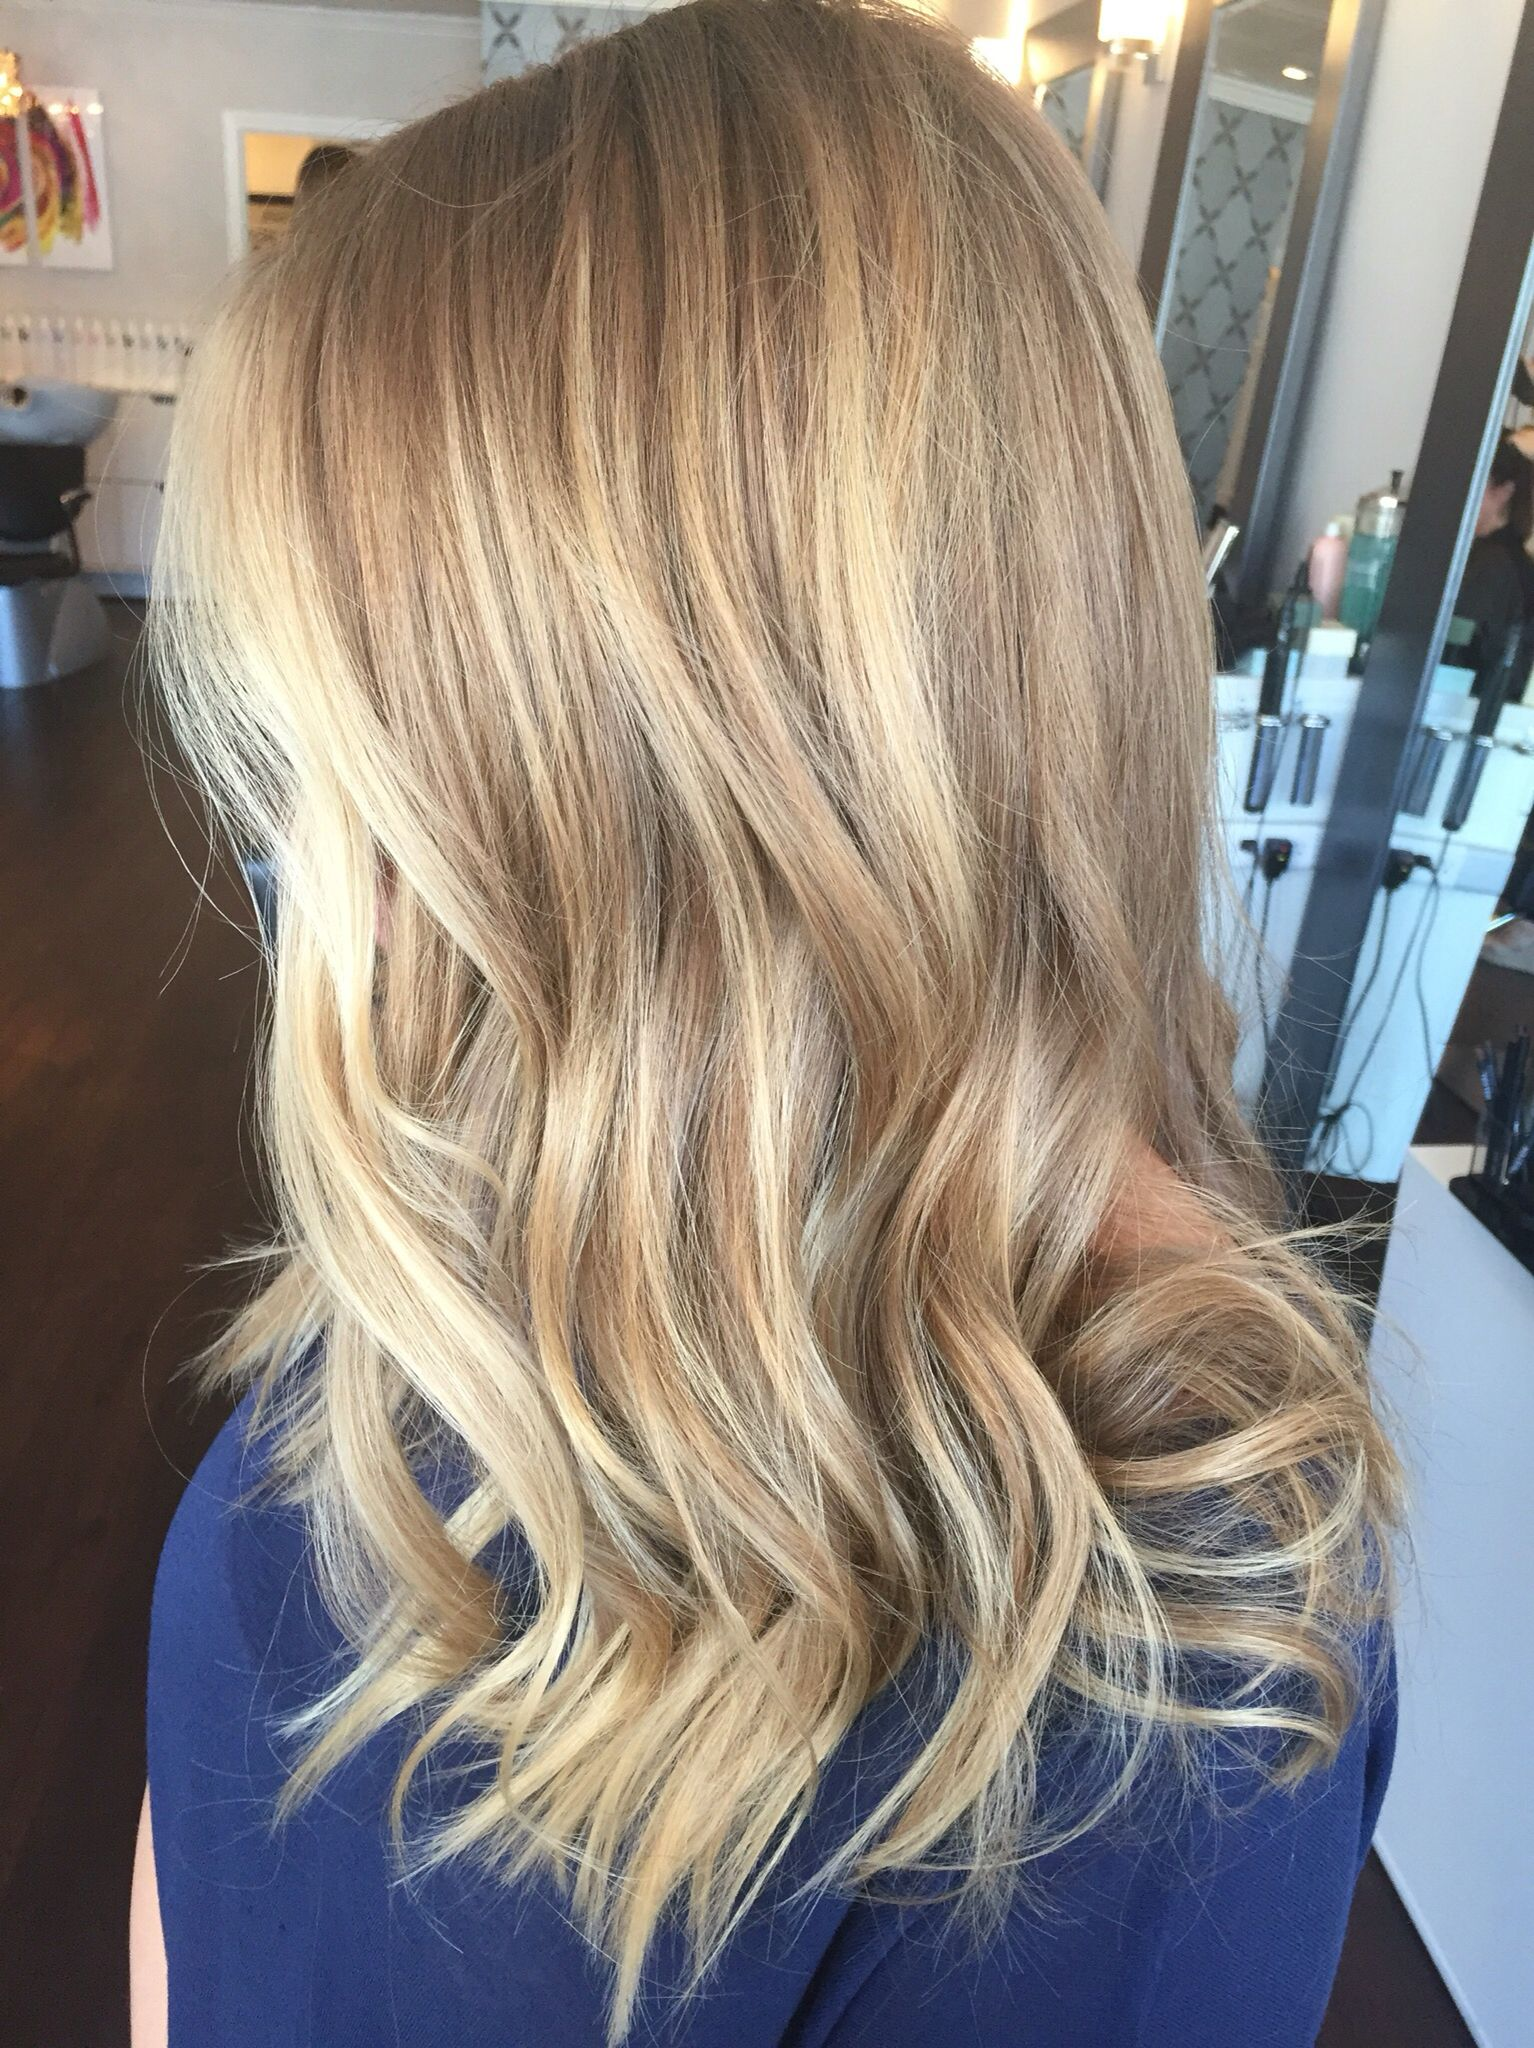 Balayage Blonde With Blonde And Golden Dimension Hair By